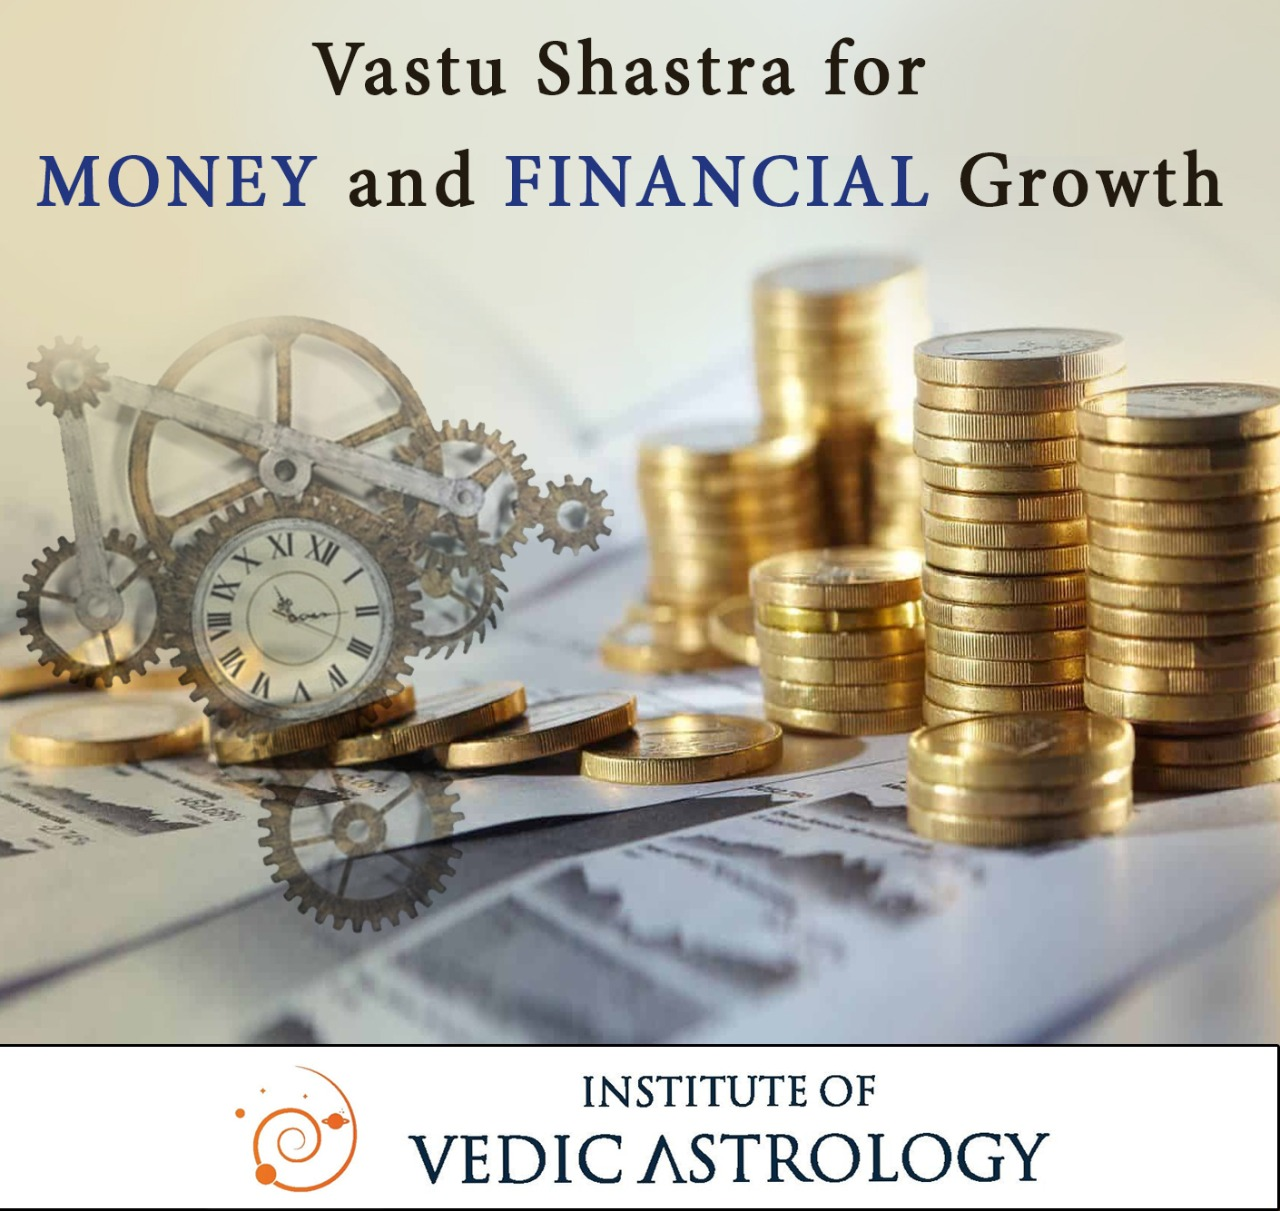 VASTU SHASTRA FOR MONEY AND FINANCIAL GROWTH